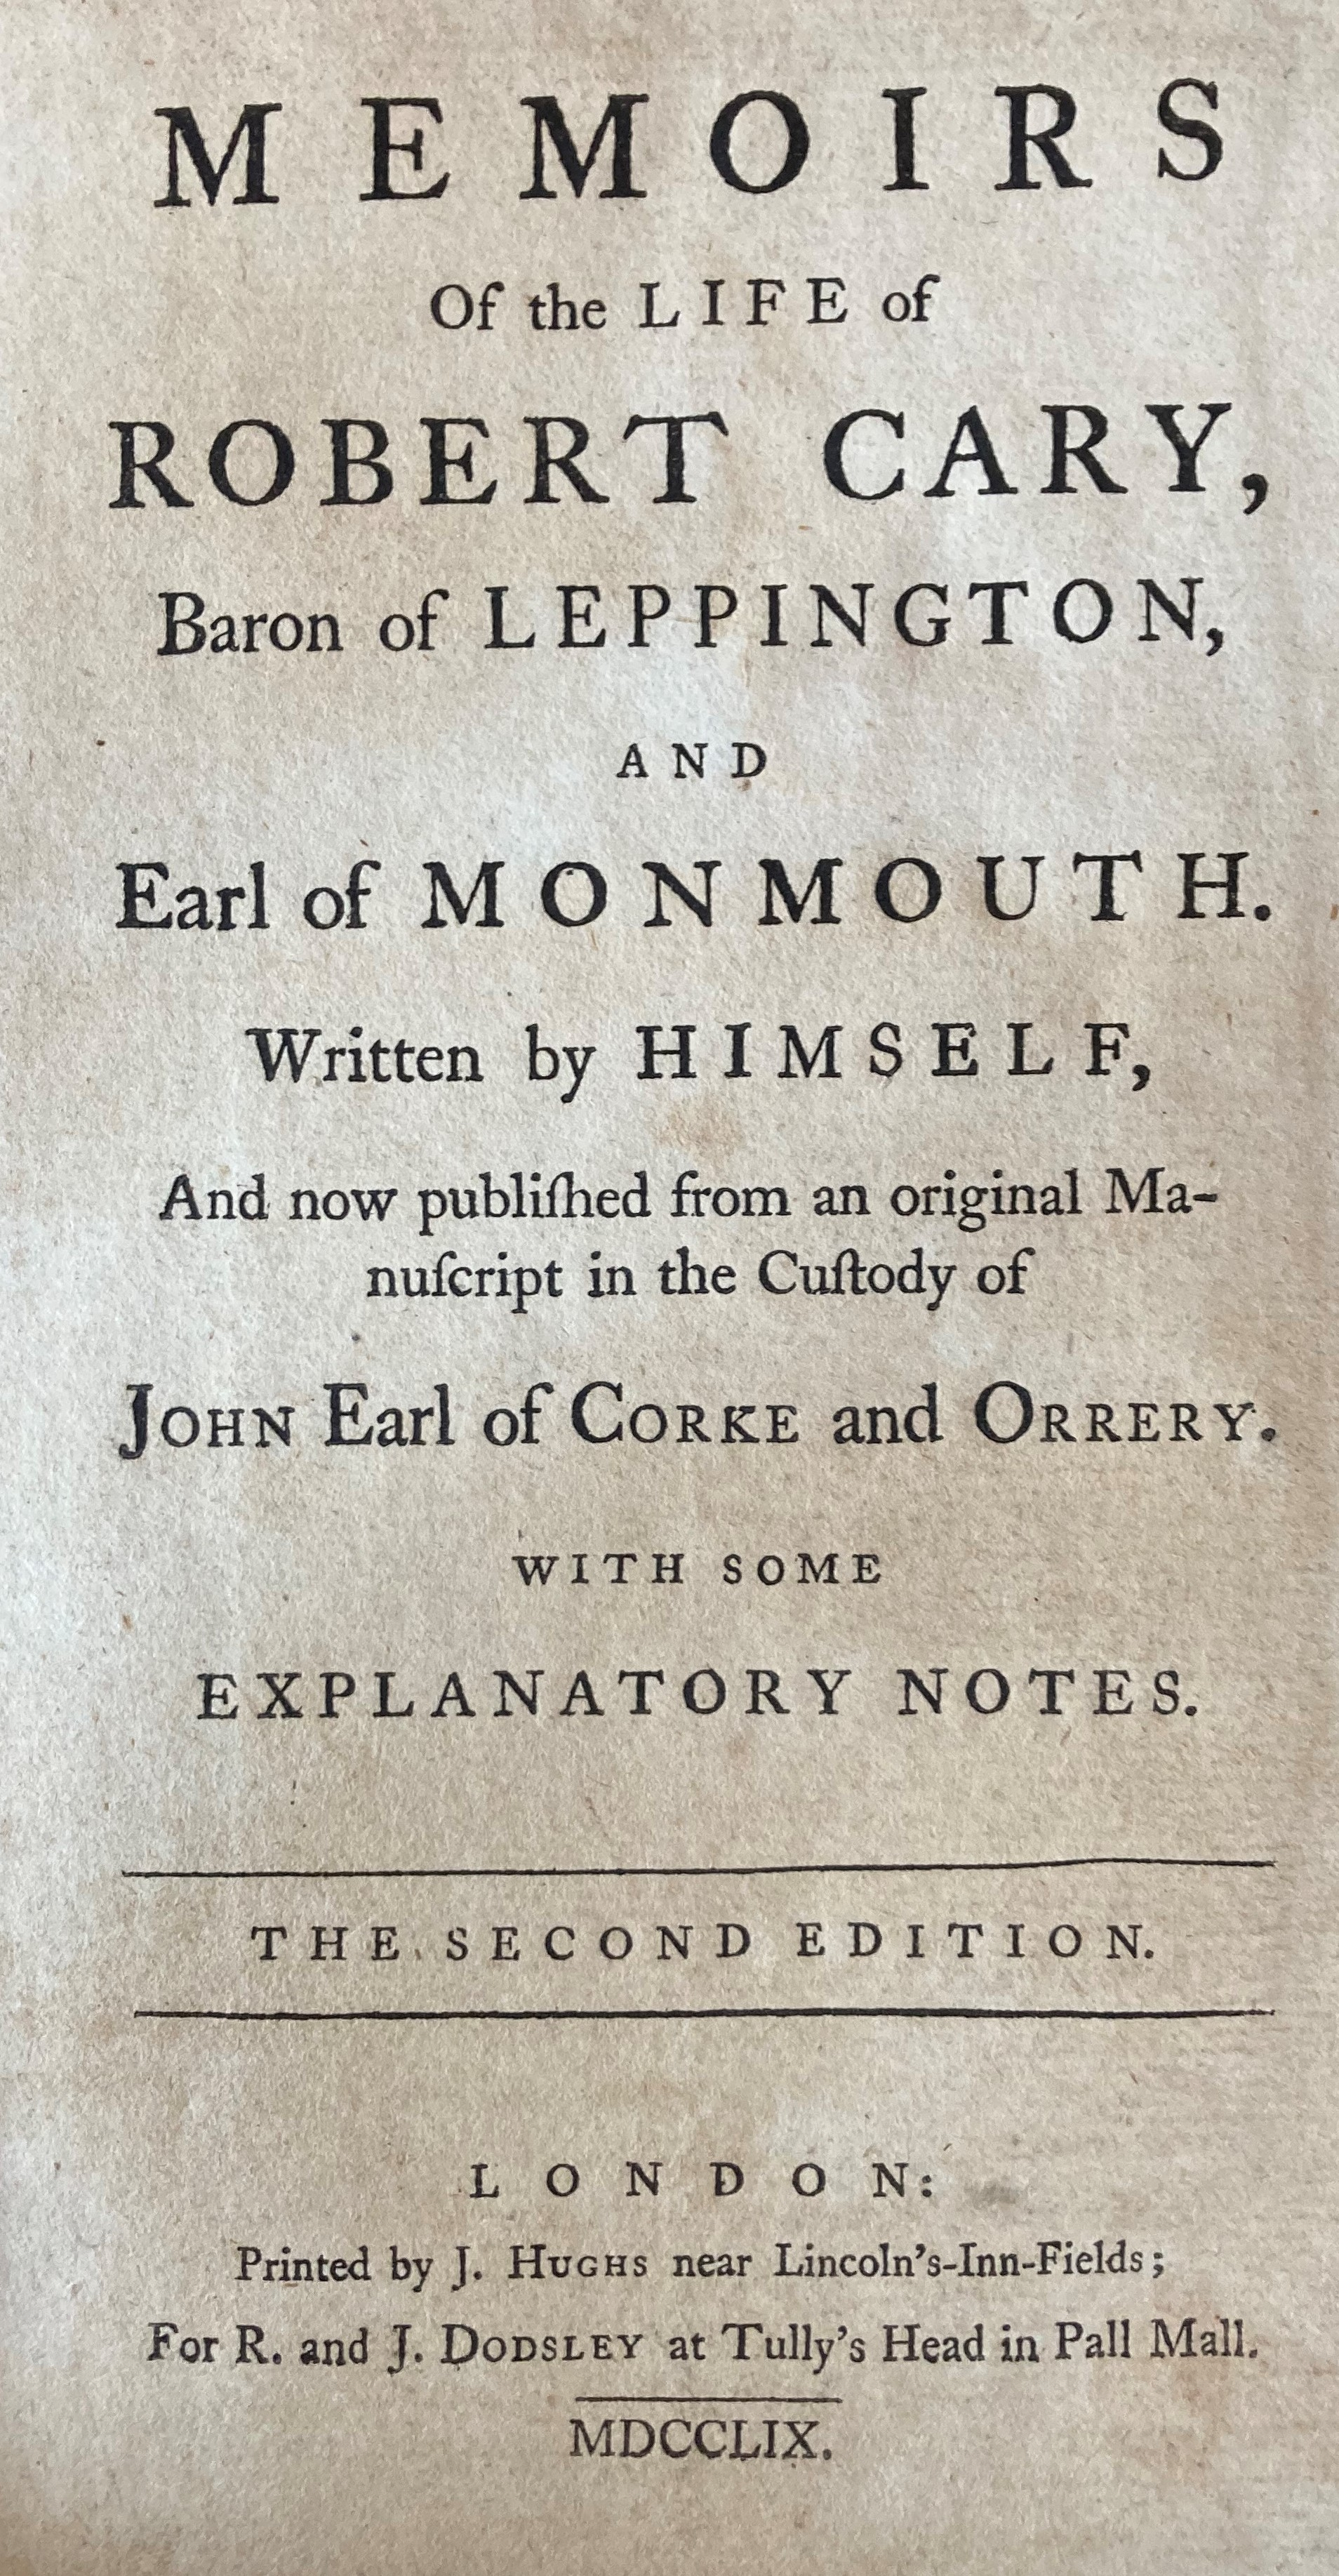 Cary -ÿMemoirs of the Life of Robert Cary, Baron of Leppington and Earl of Monmouth.. Published from